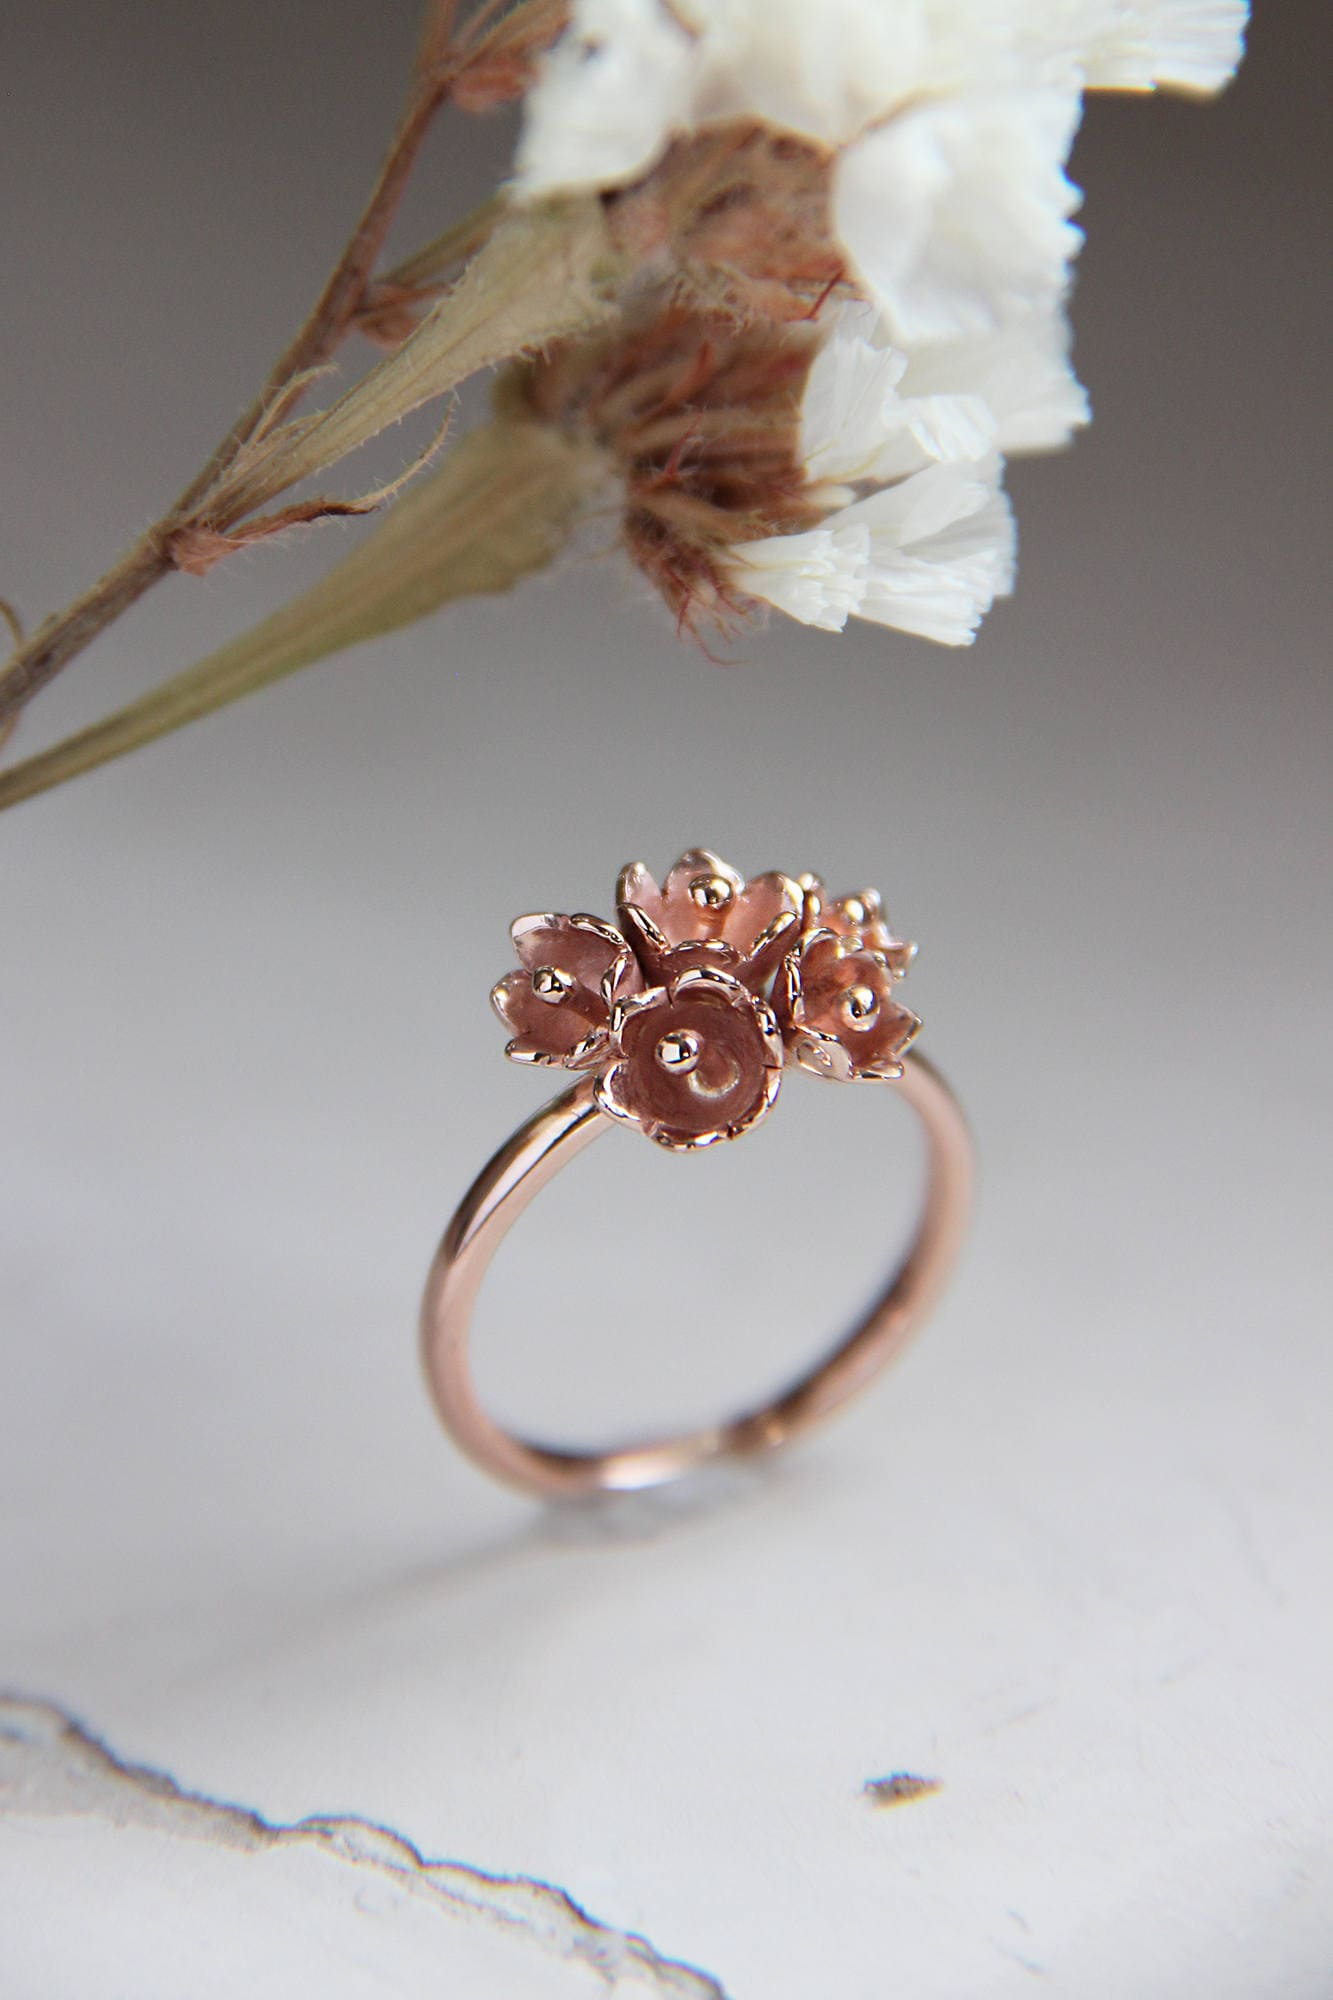 jewellery orro rings engagement diamond gold ring lily henrich denzel champagne diamonds home red